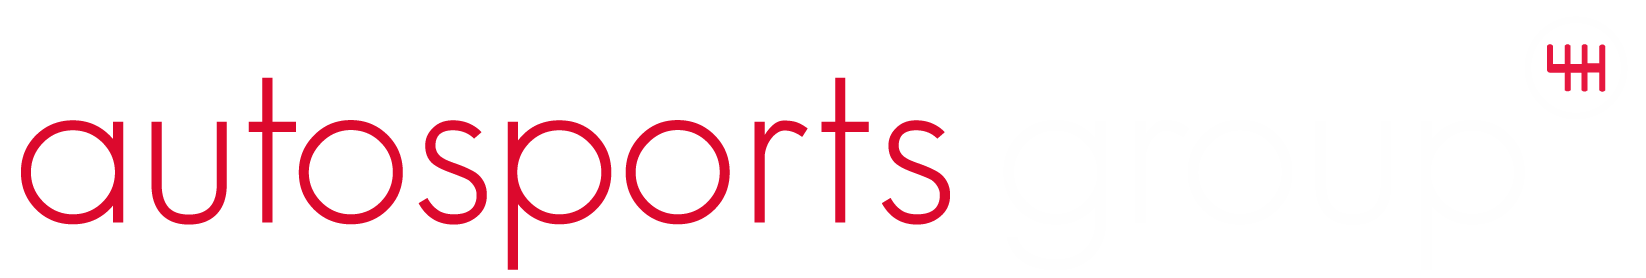 autosports group logo